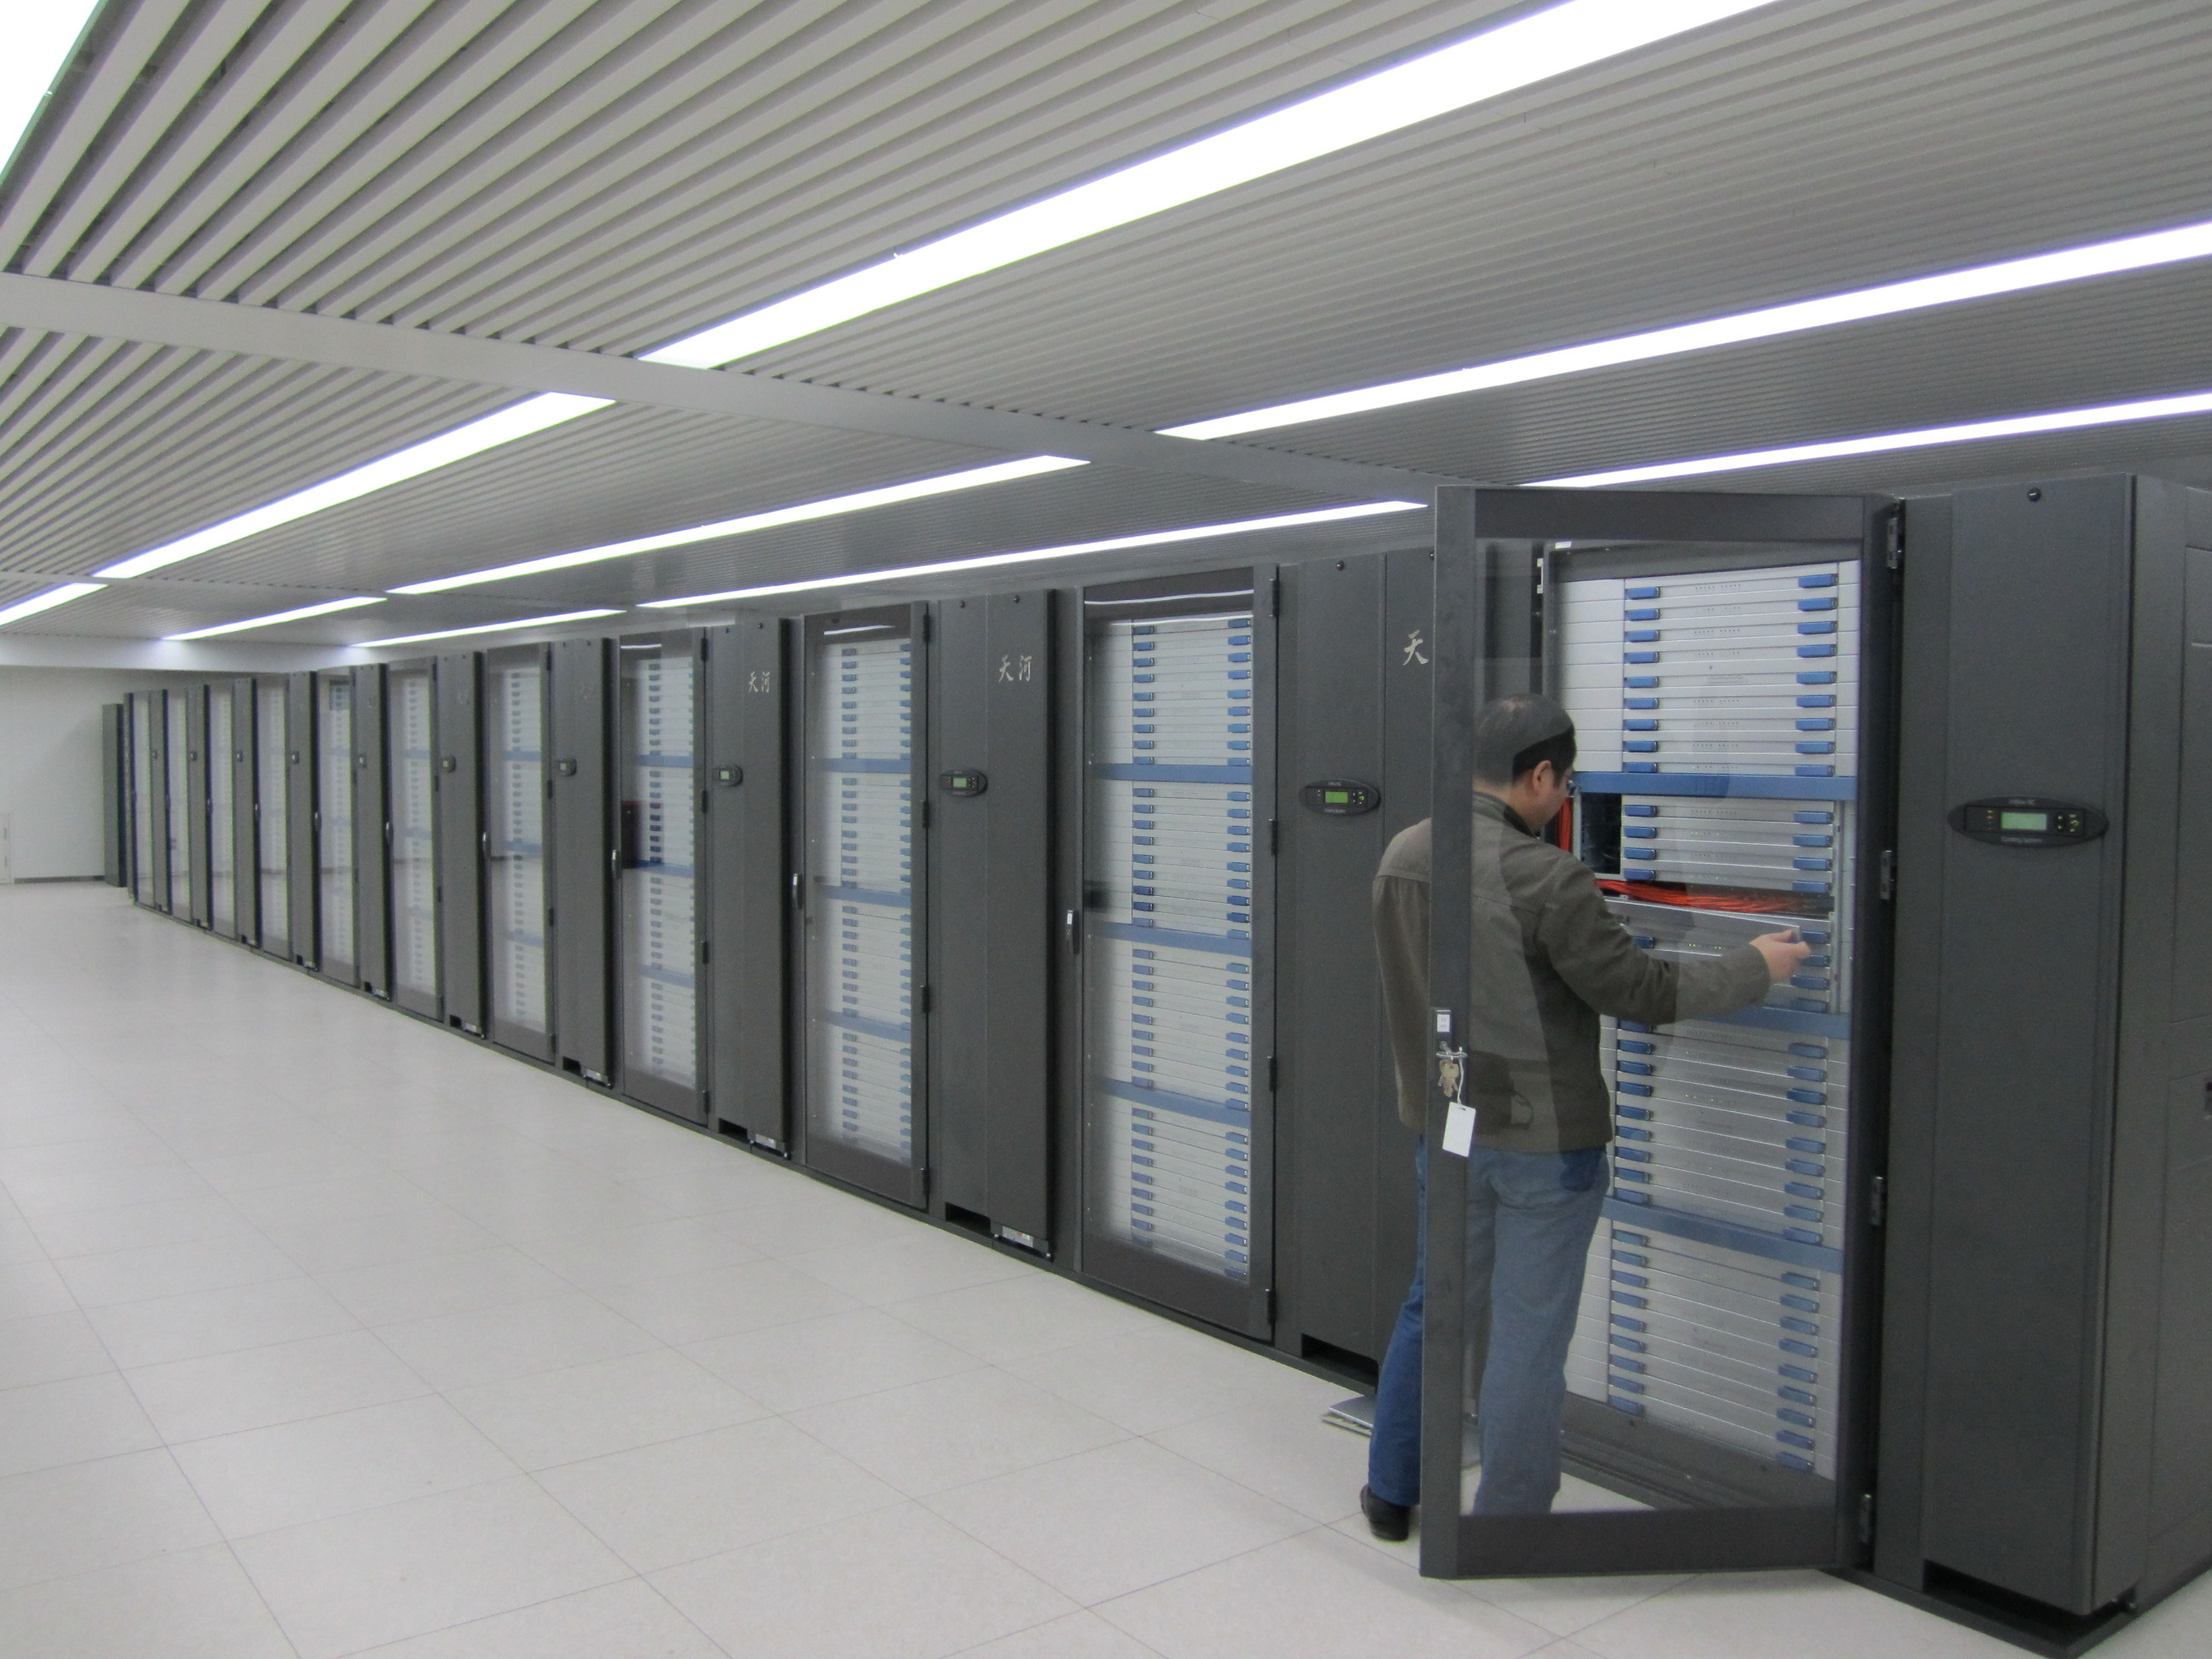 China's Tianhe-1A supercomputer